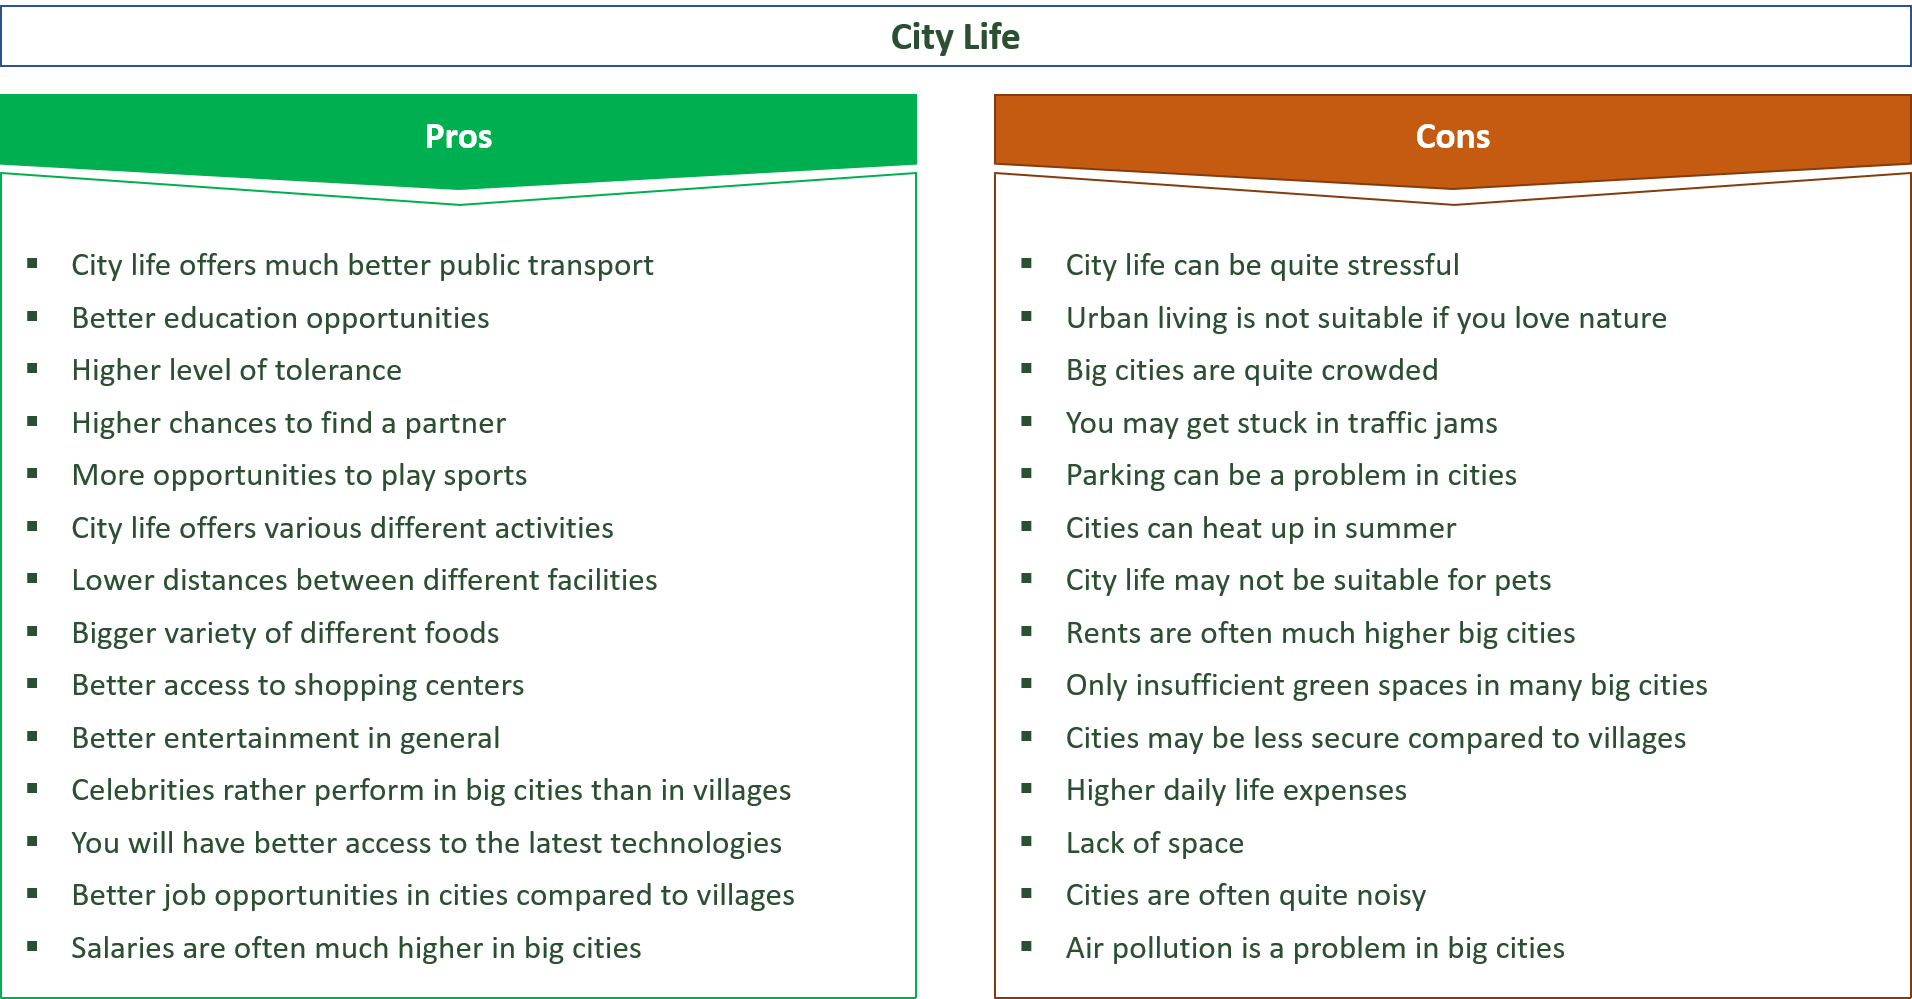 advantages and disadvantages of city life vs. countryside life